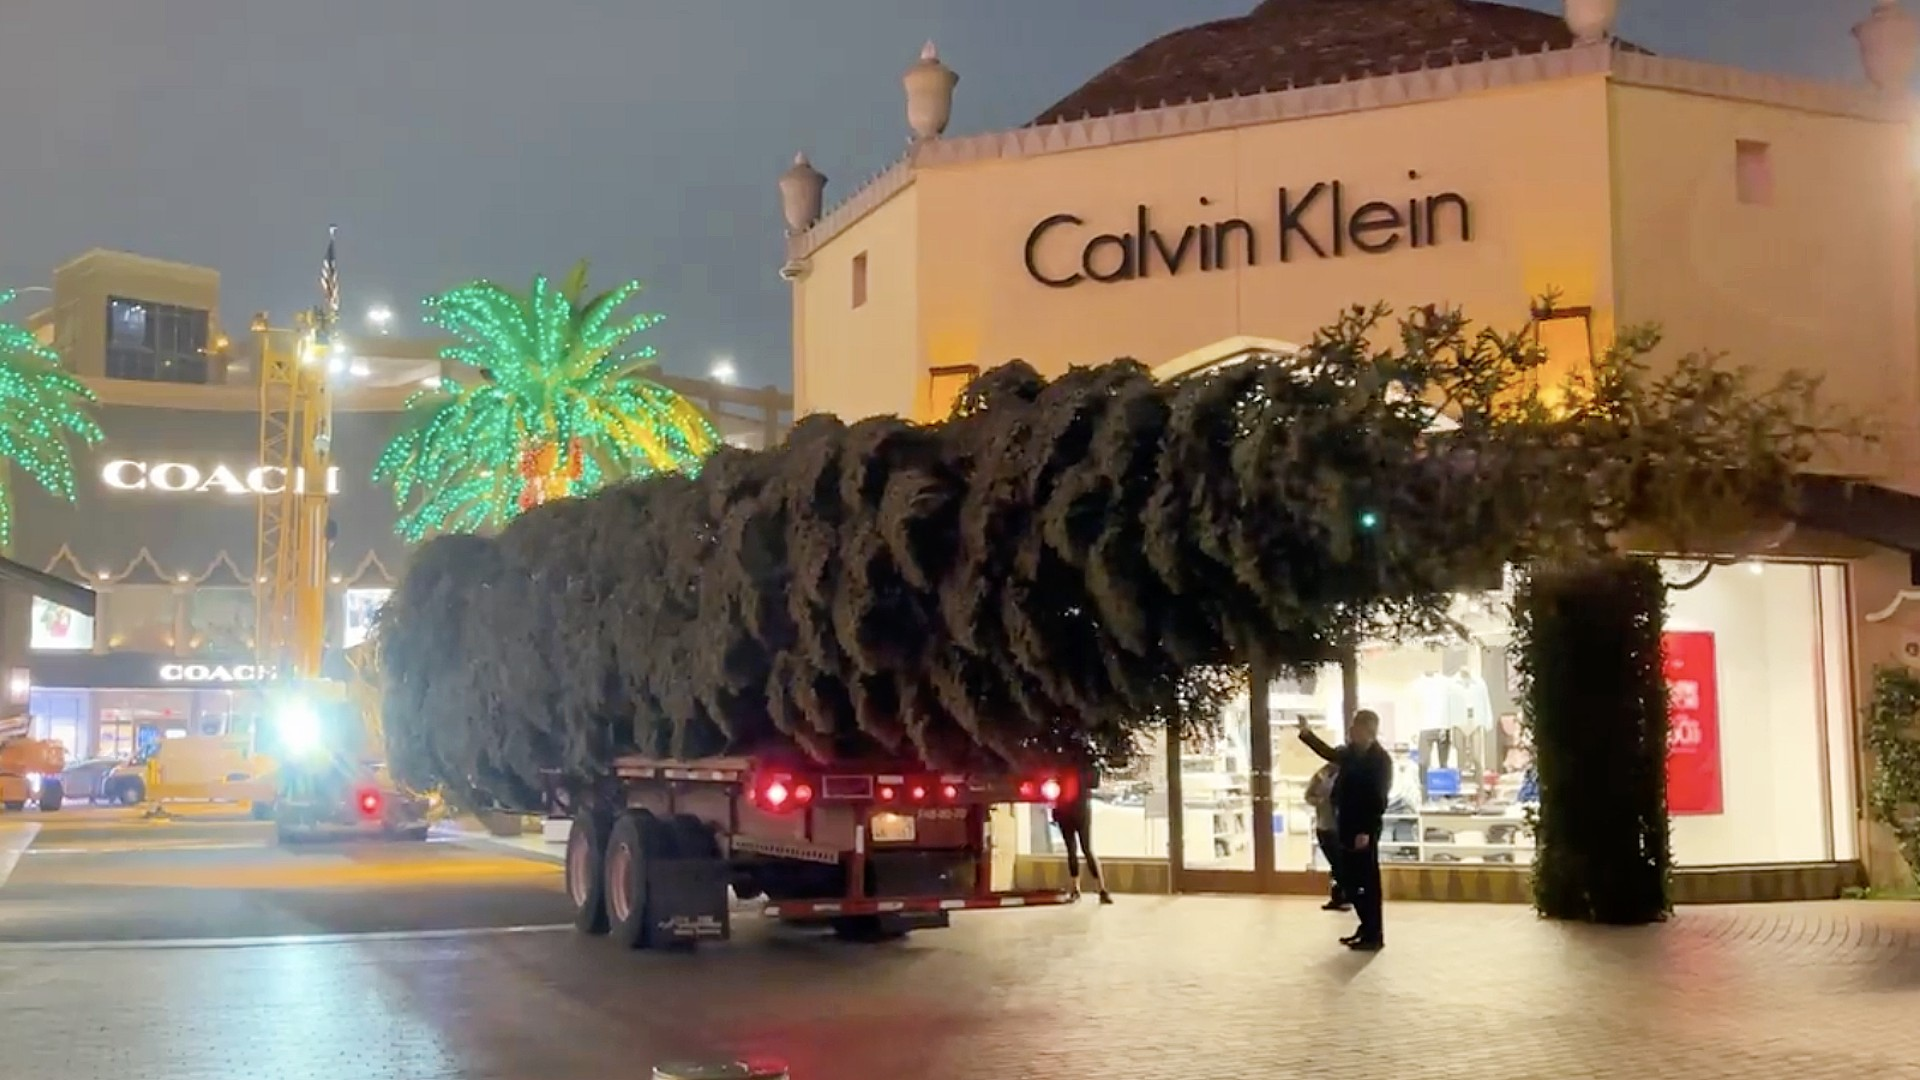 A 115-foot tall white fir arrives at Citadel Outlets on Oct. 22, 2021. (Citadel Outlets)